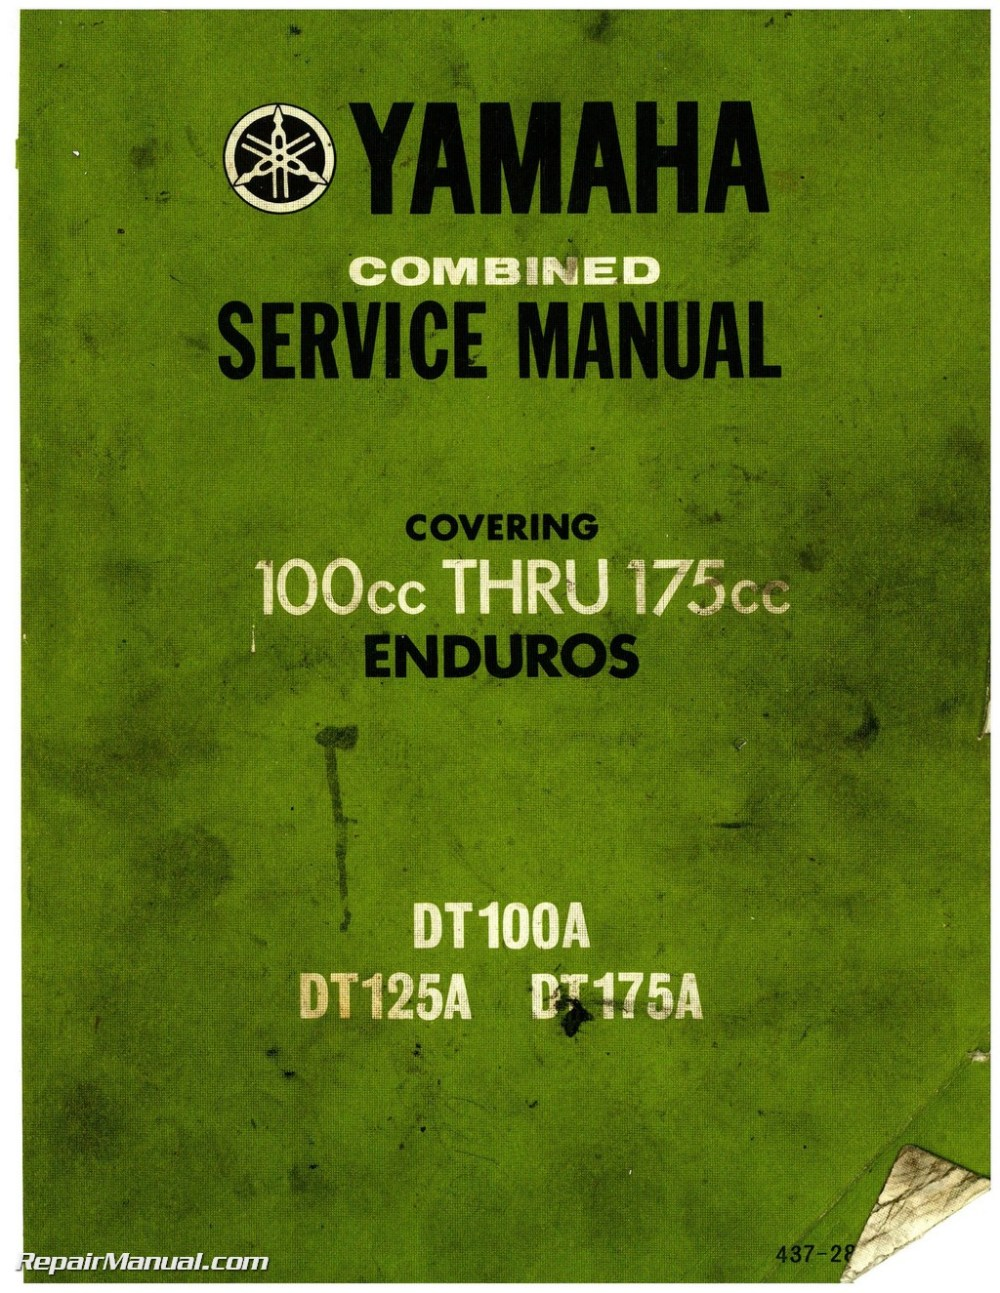 medium resolution of 1974 yamaha dt100 dt125 dt175 enduro motorcycle service manual 1974 yamaha dt 100 wiring diagram